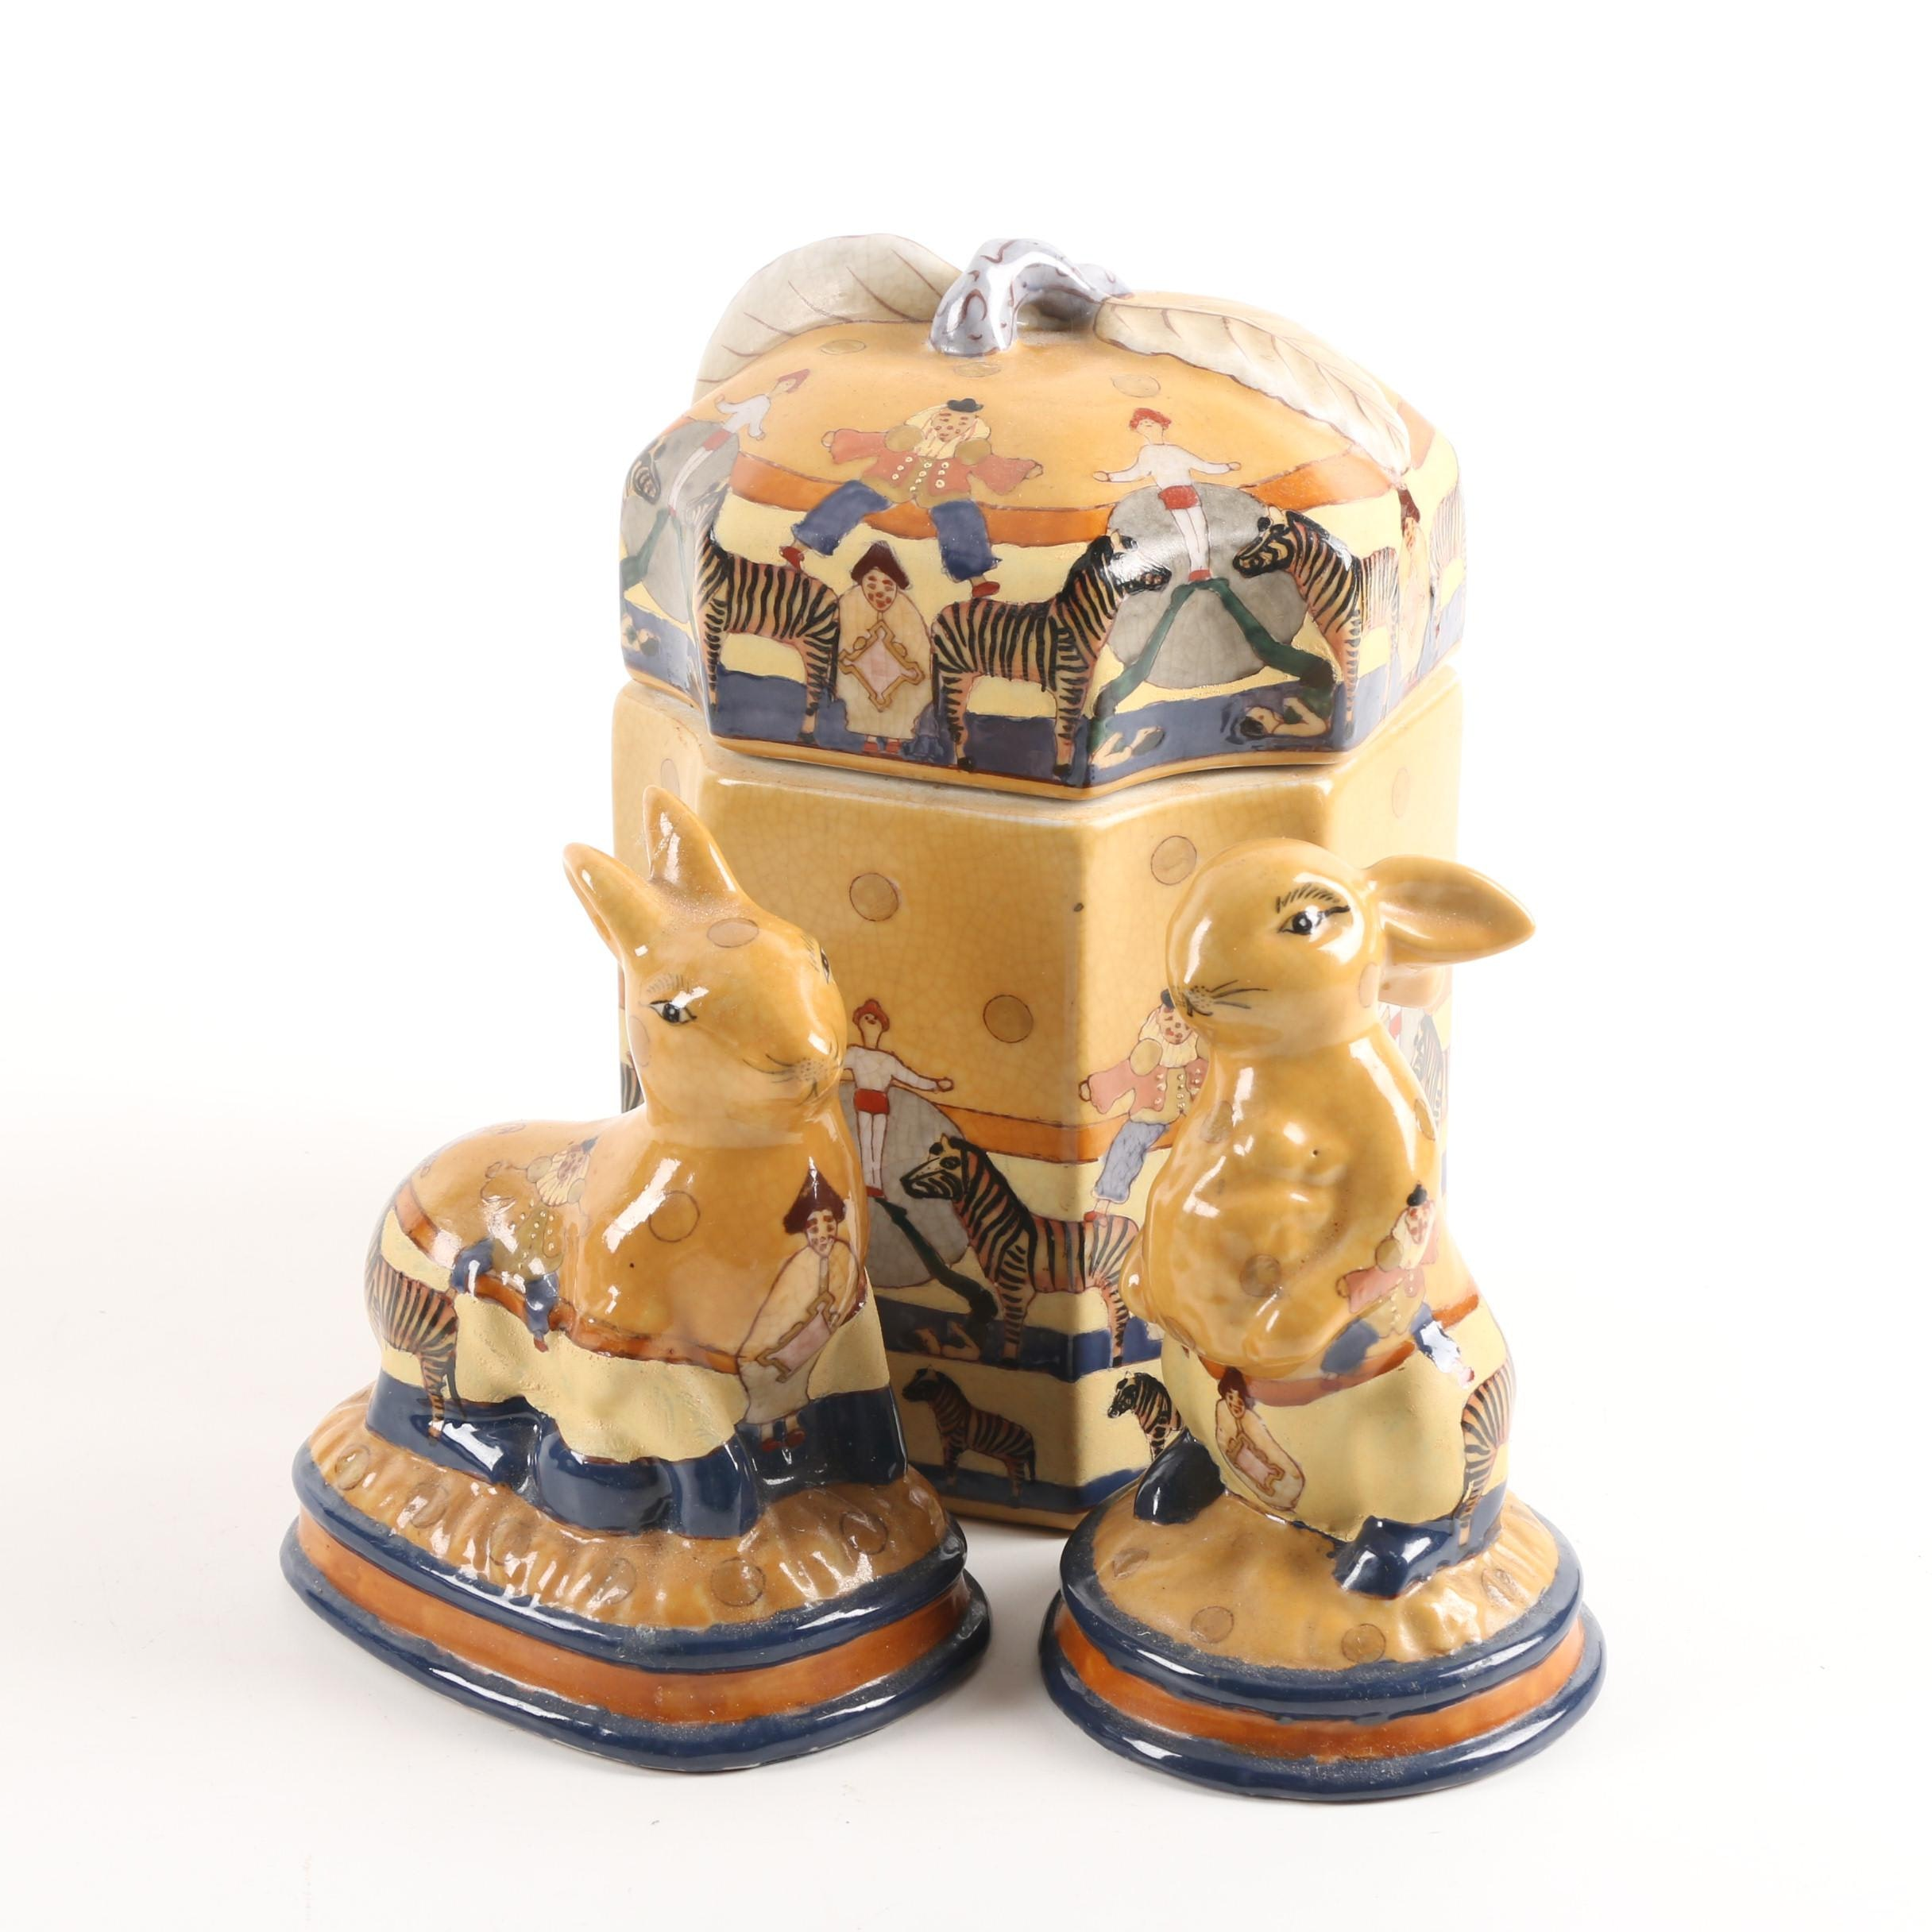 Contemporary Circus Themed Rabbit Ceramic Figurines and Decorative Canister